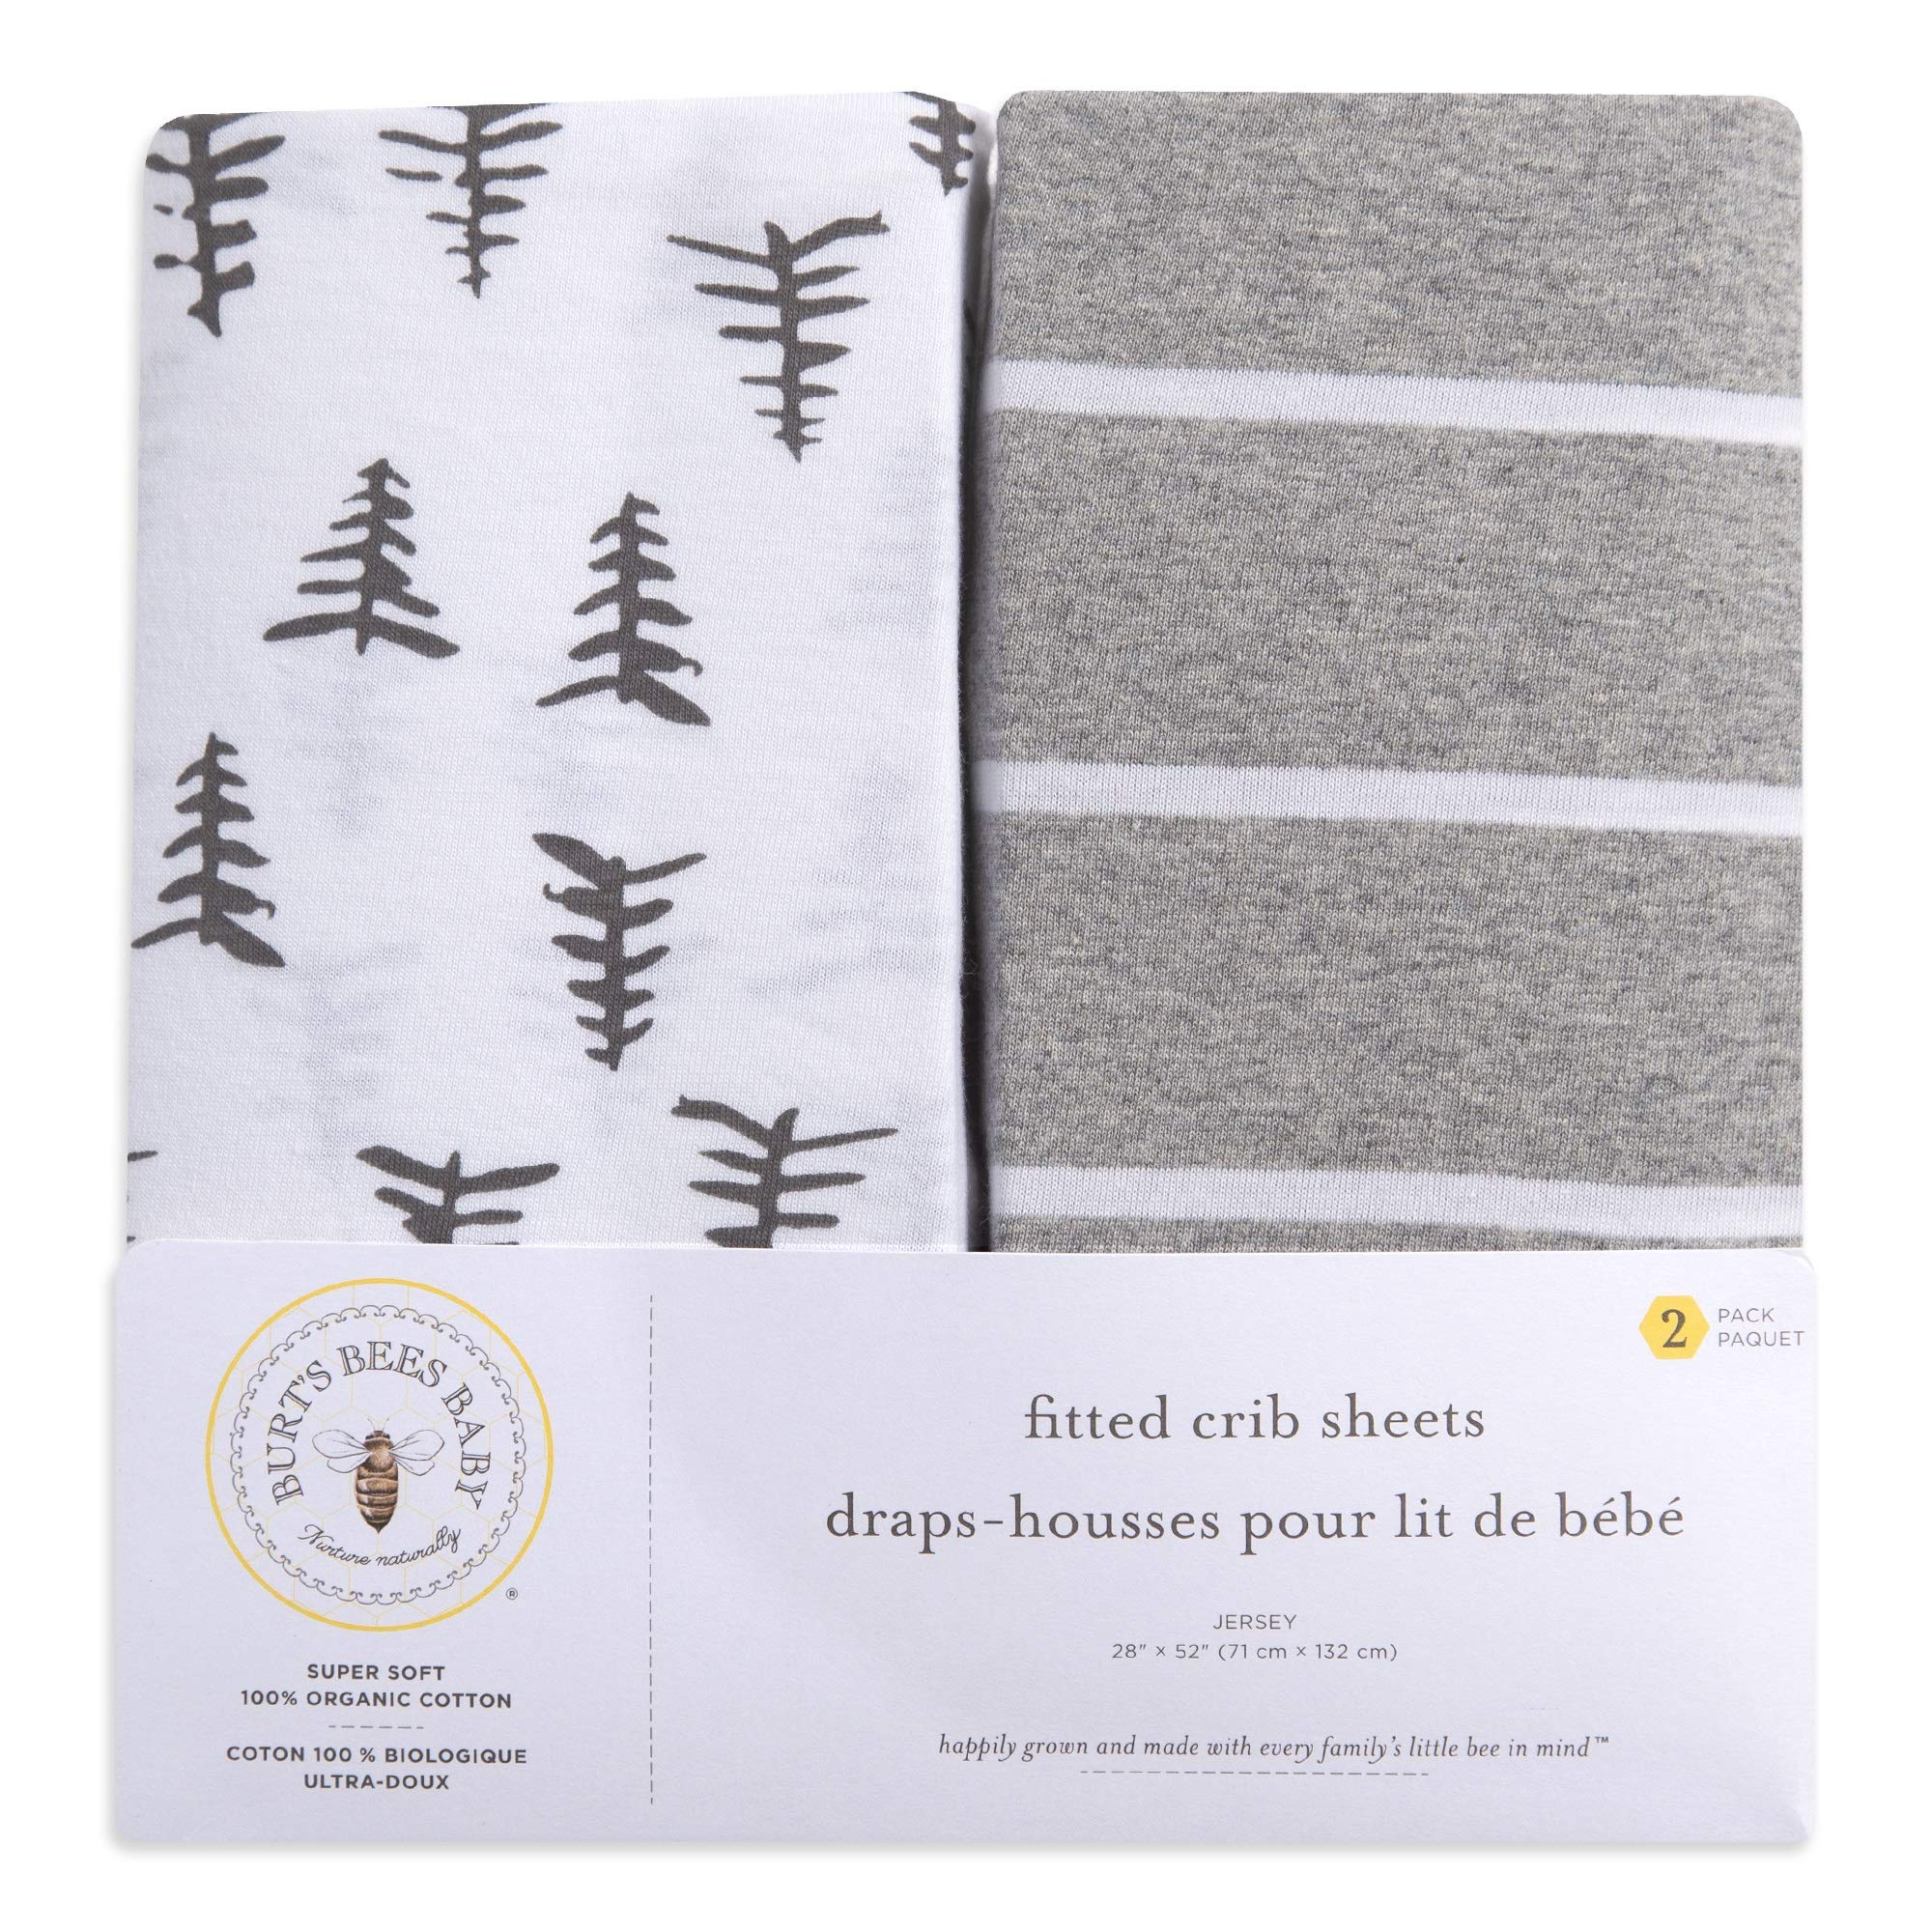 Burt's Bees Baby - Fitted Crib Sheets, 2-Pack, Boys & Unisex 100% Organic Cotton Crib Sheet for Standard Crib and Toddler Mattresses (Pine Forest) by Burt's Bees Baby (Image #2)